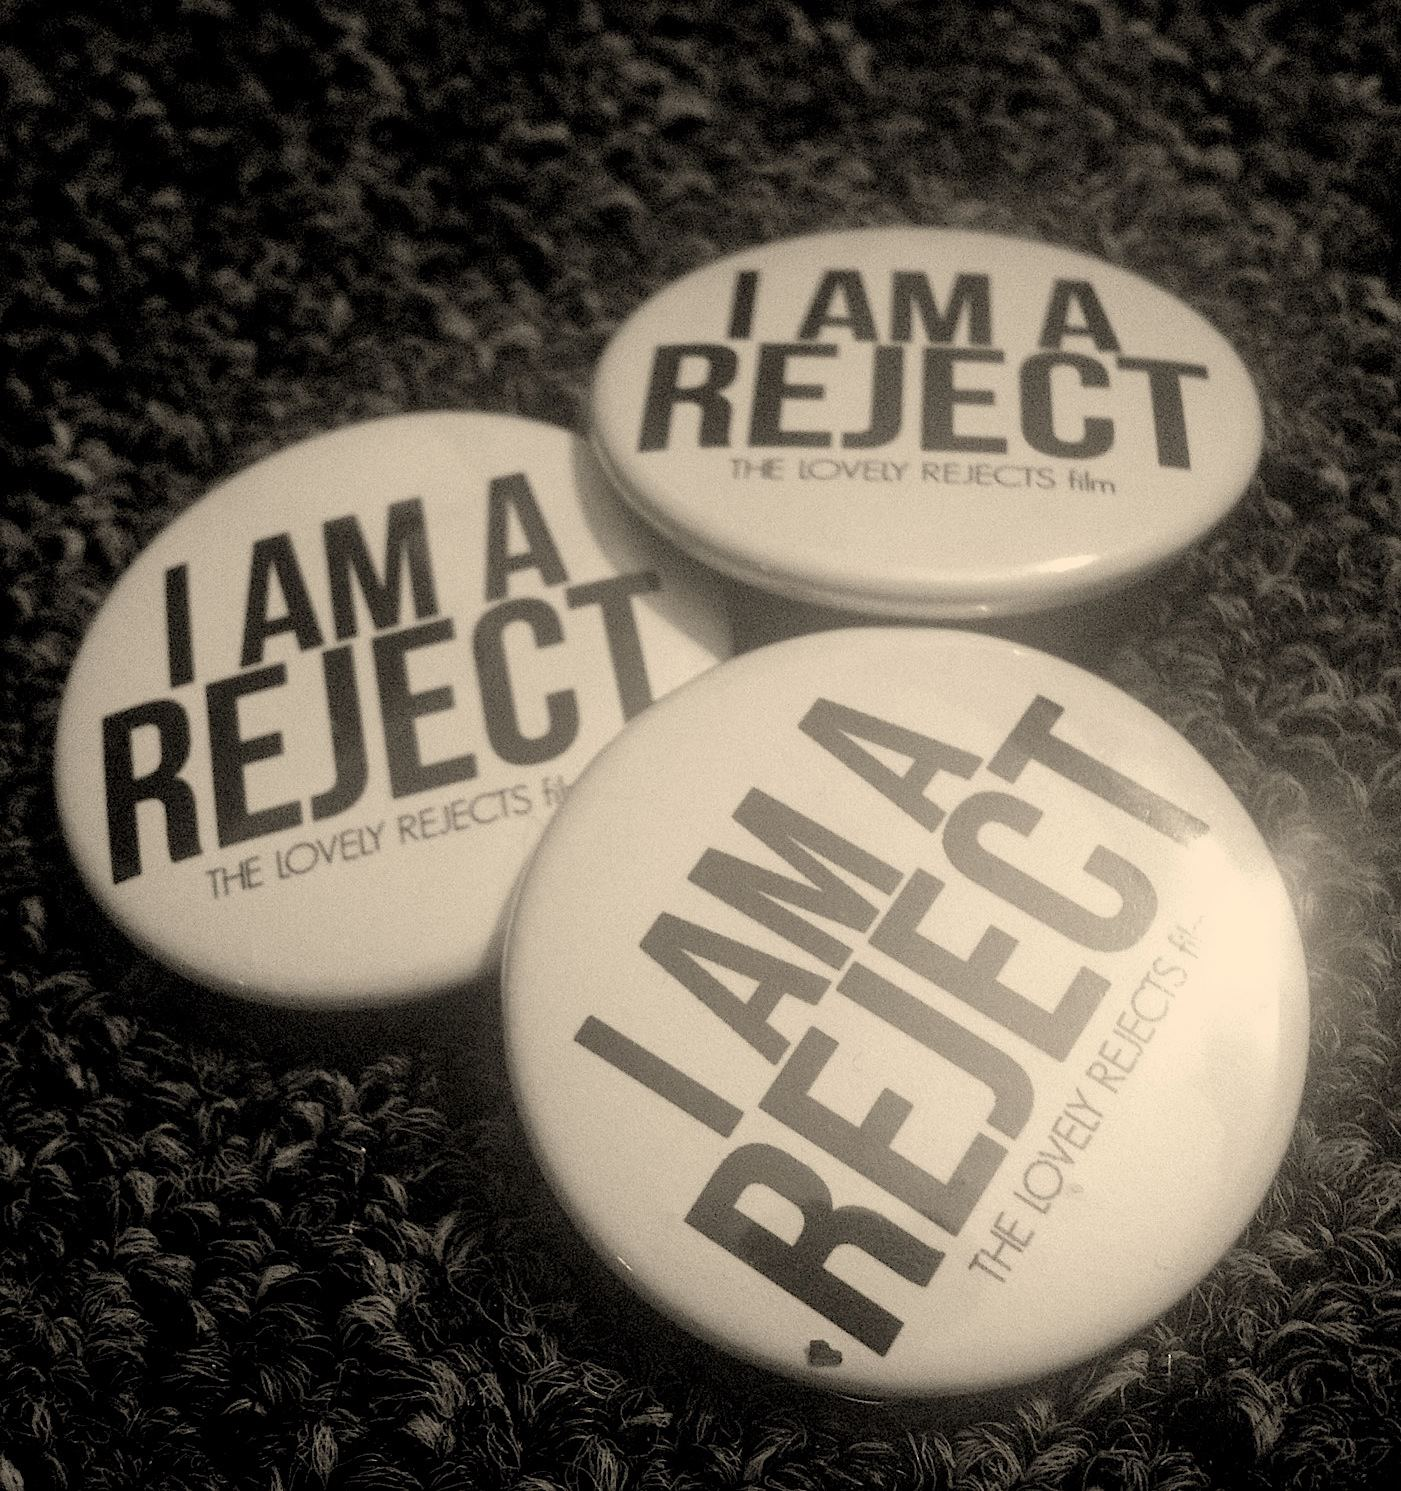 I AM A REJECT BUTTONS